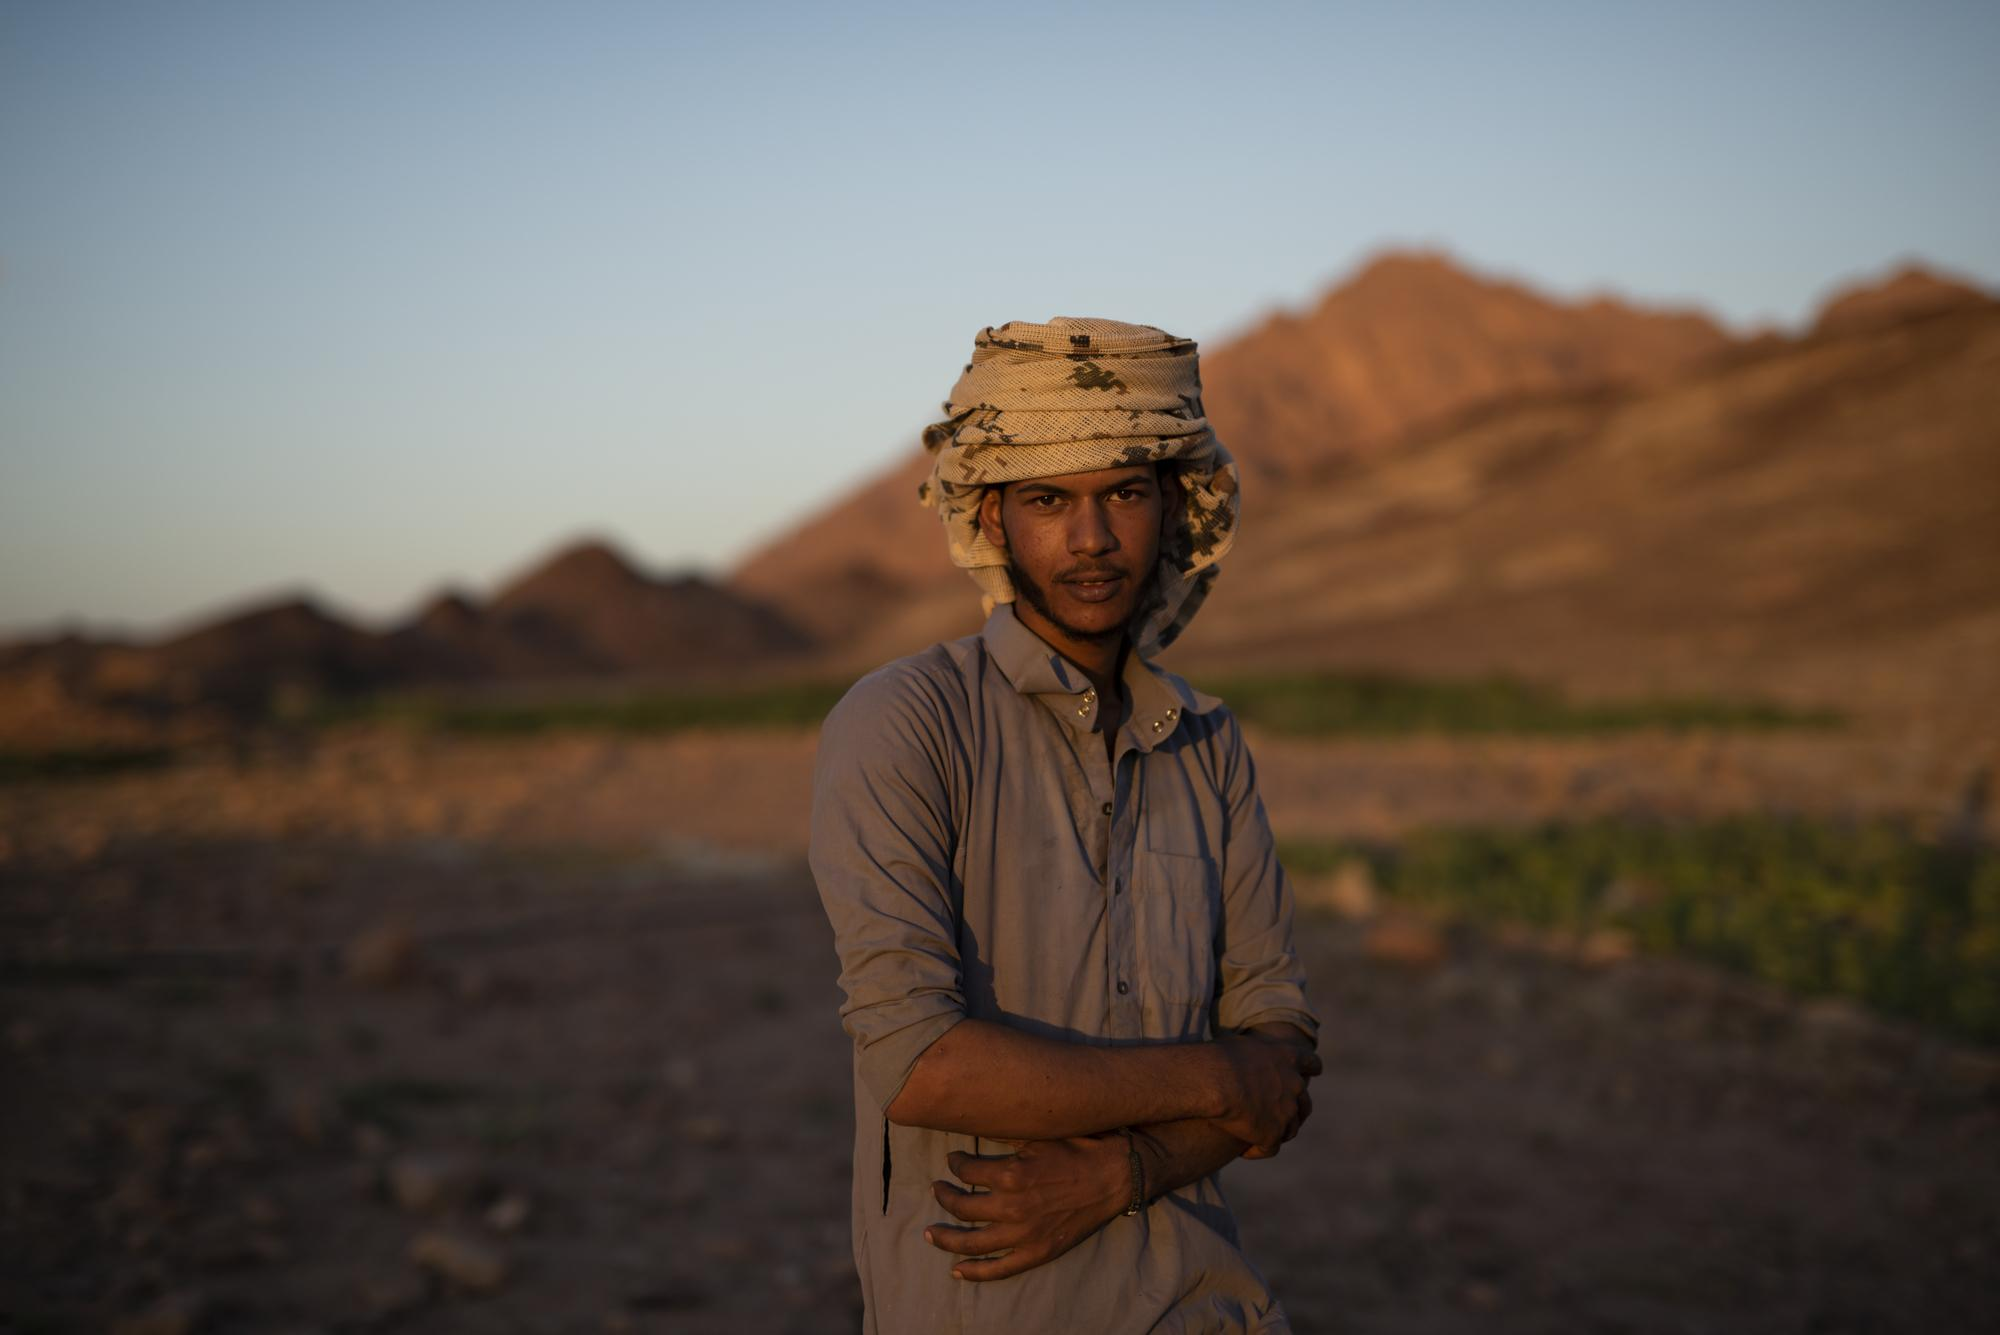 Youssef (20), collects Khodary plant leaves in order to be then grind the next day and dried up before selling to merchants and customers. Youssef has taken over an old Bedouin tradition to grow and care for his family garden. A tradition that has disappeared for years before the return of the flood to the land in March 2020. Gharba Valley, S.t Catherine, South Sinai, Egypt, October 2020.